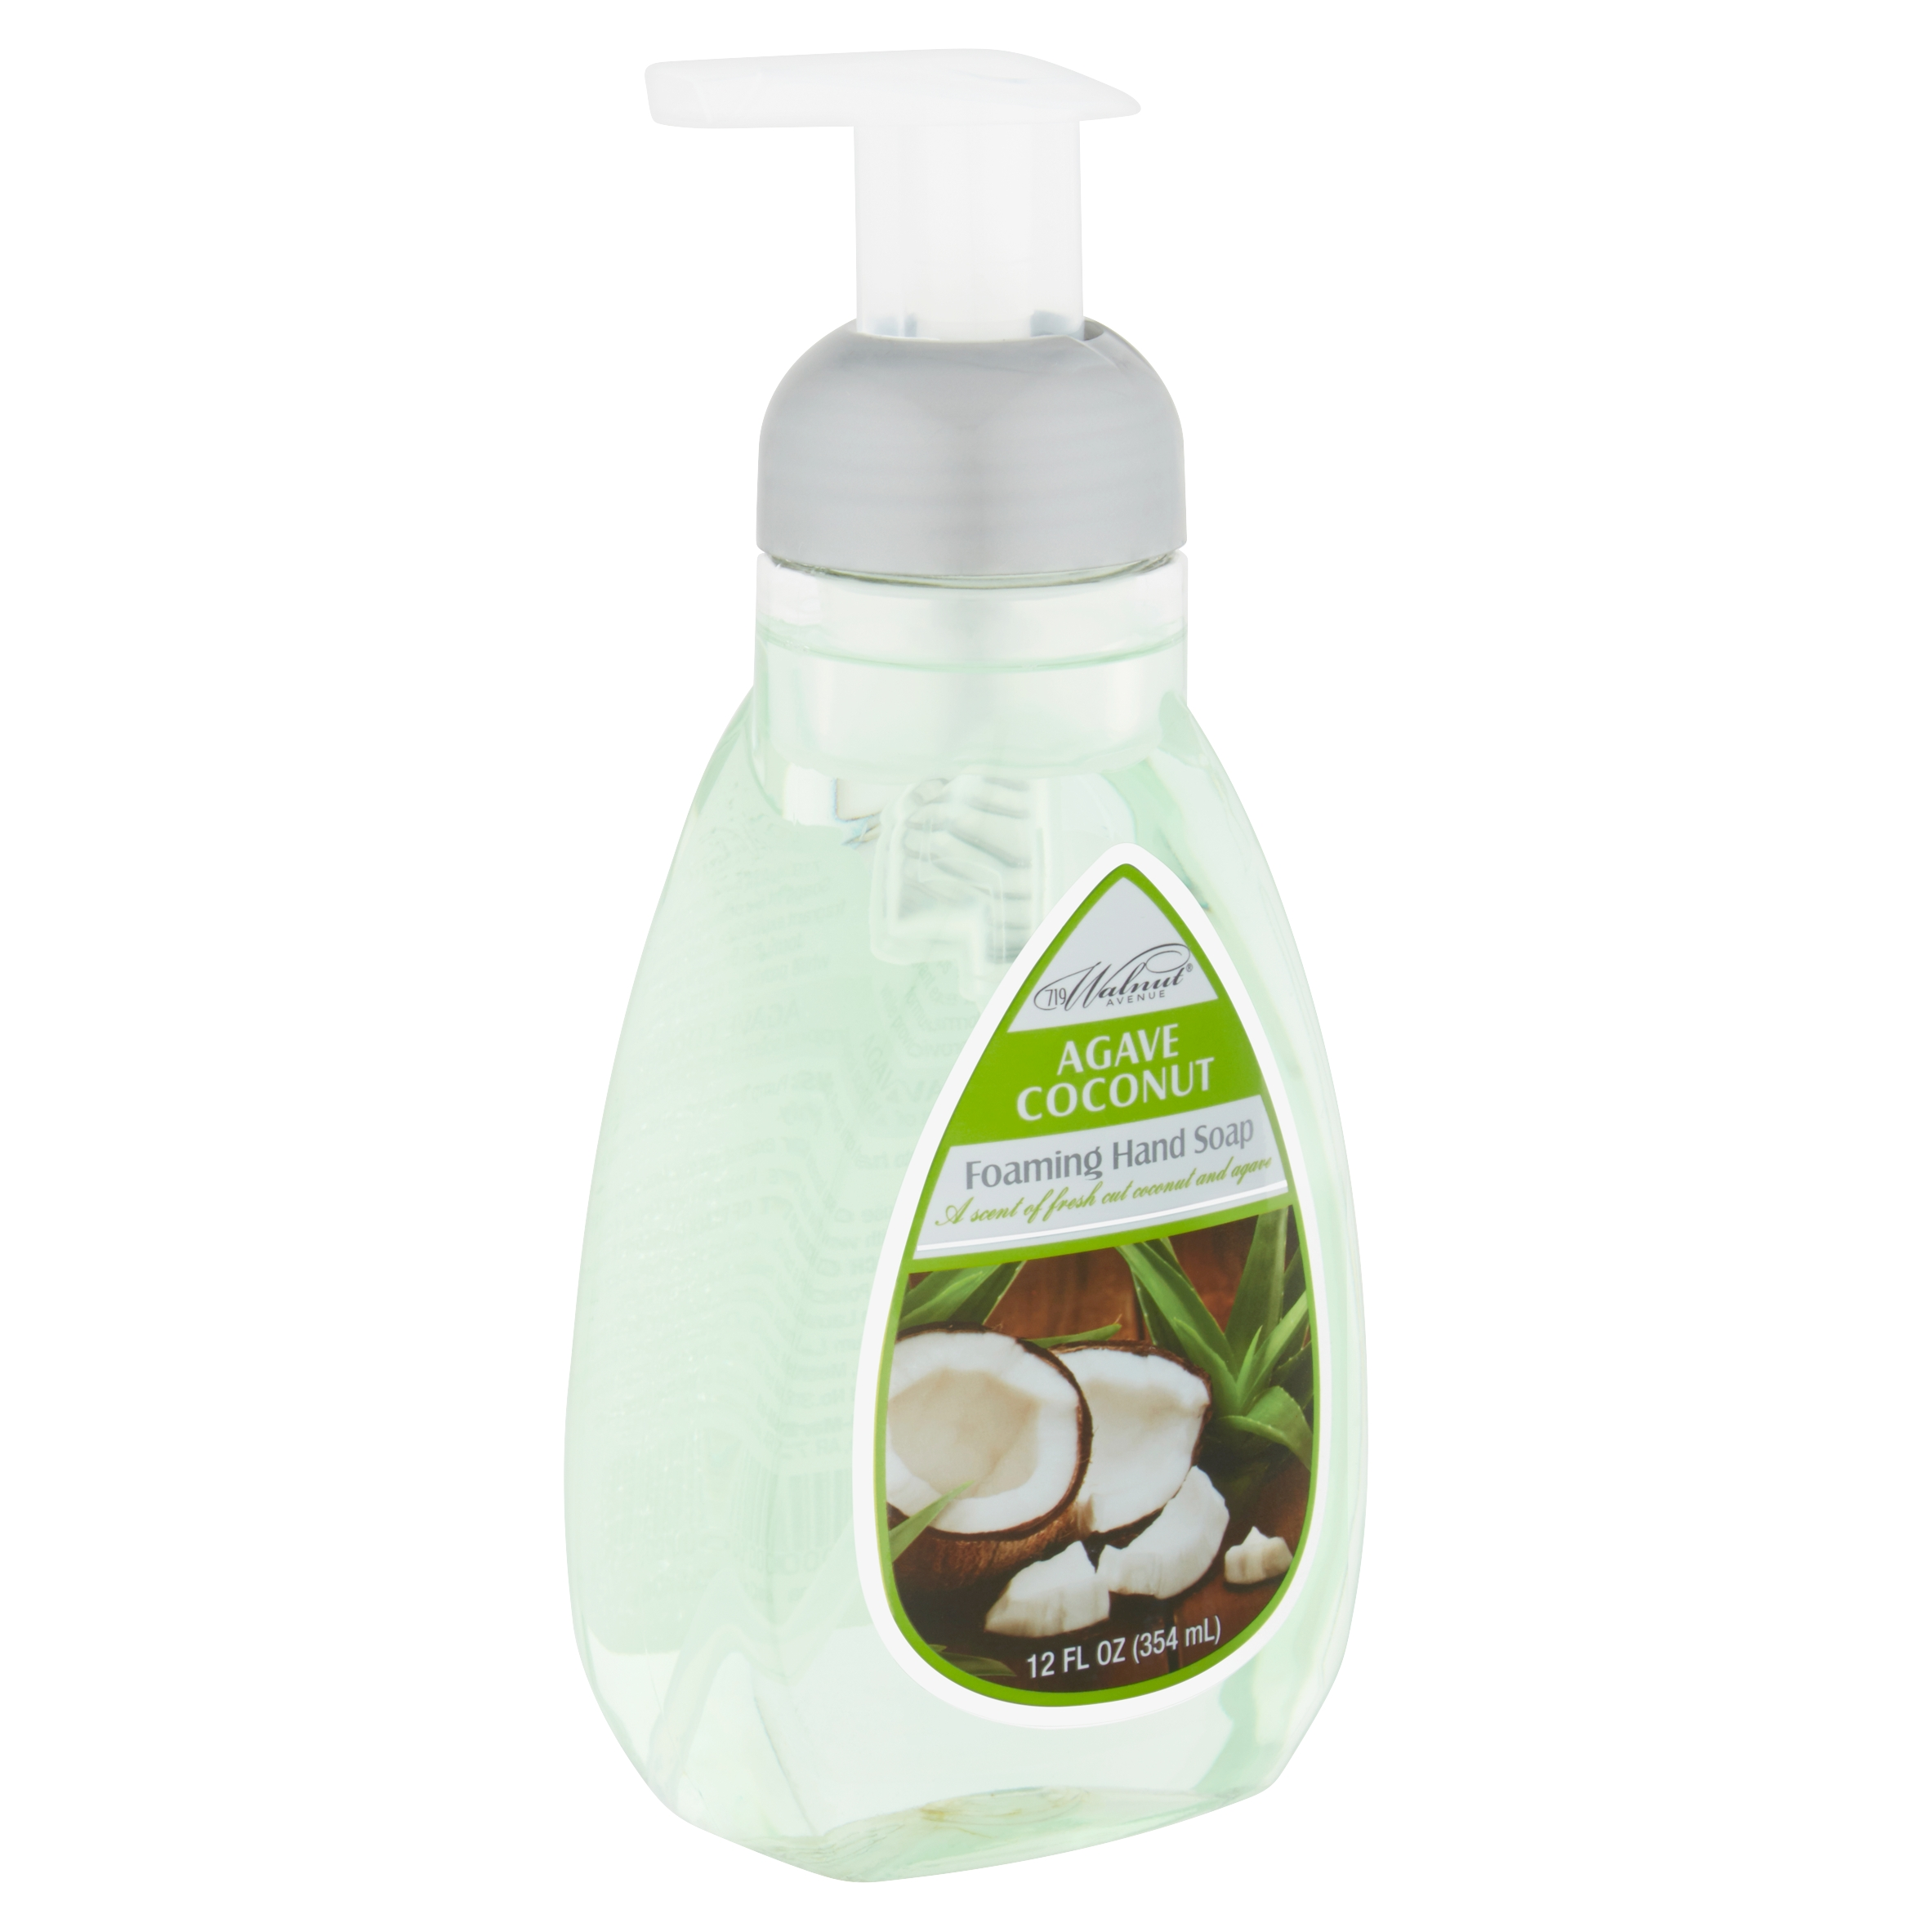 719 Walnut Avenue Agave Coconut Foaming Hand Soap, 12 fl oz